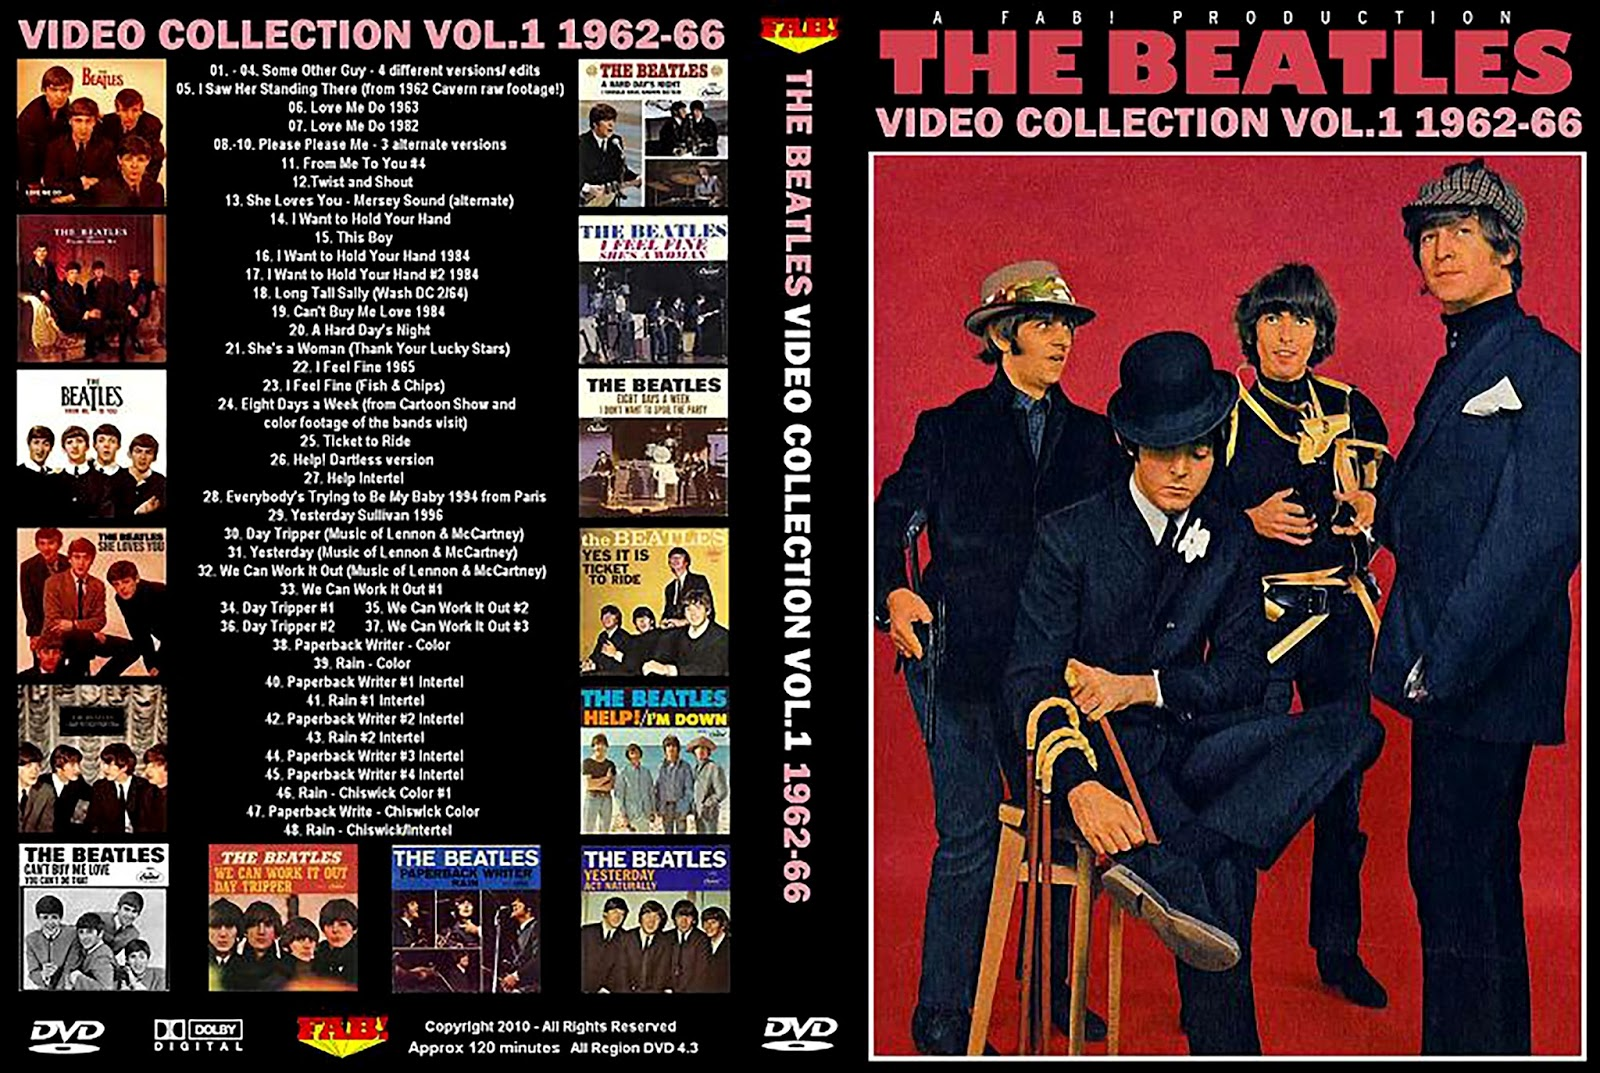 The Beatles - The Video Collection Vol.1 1962-66 DVD